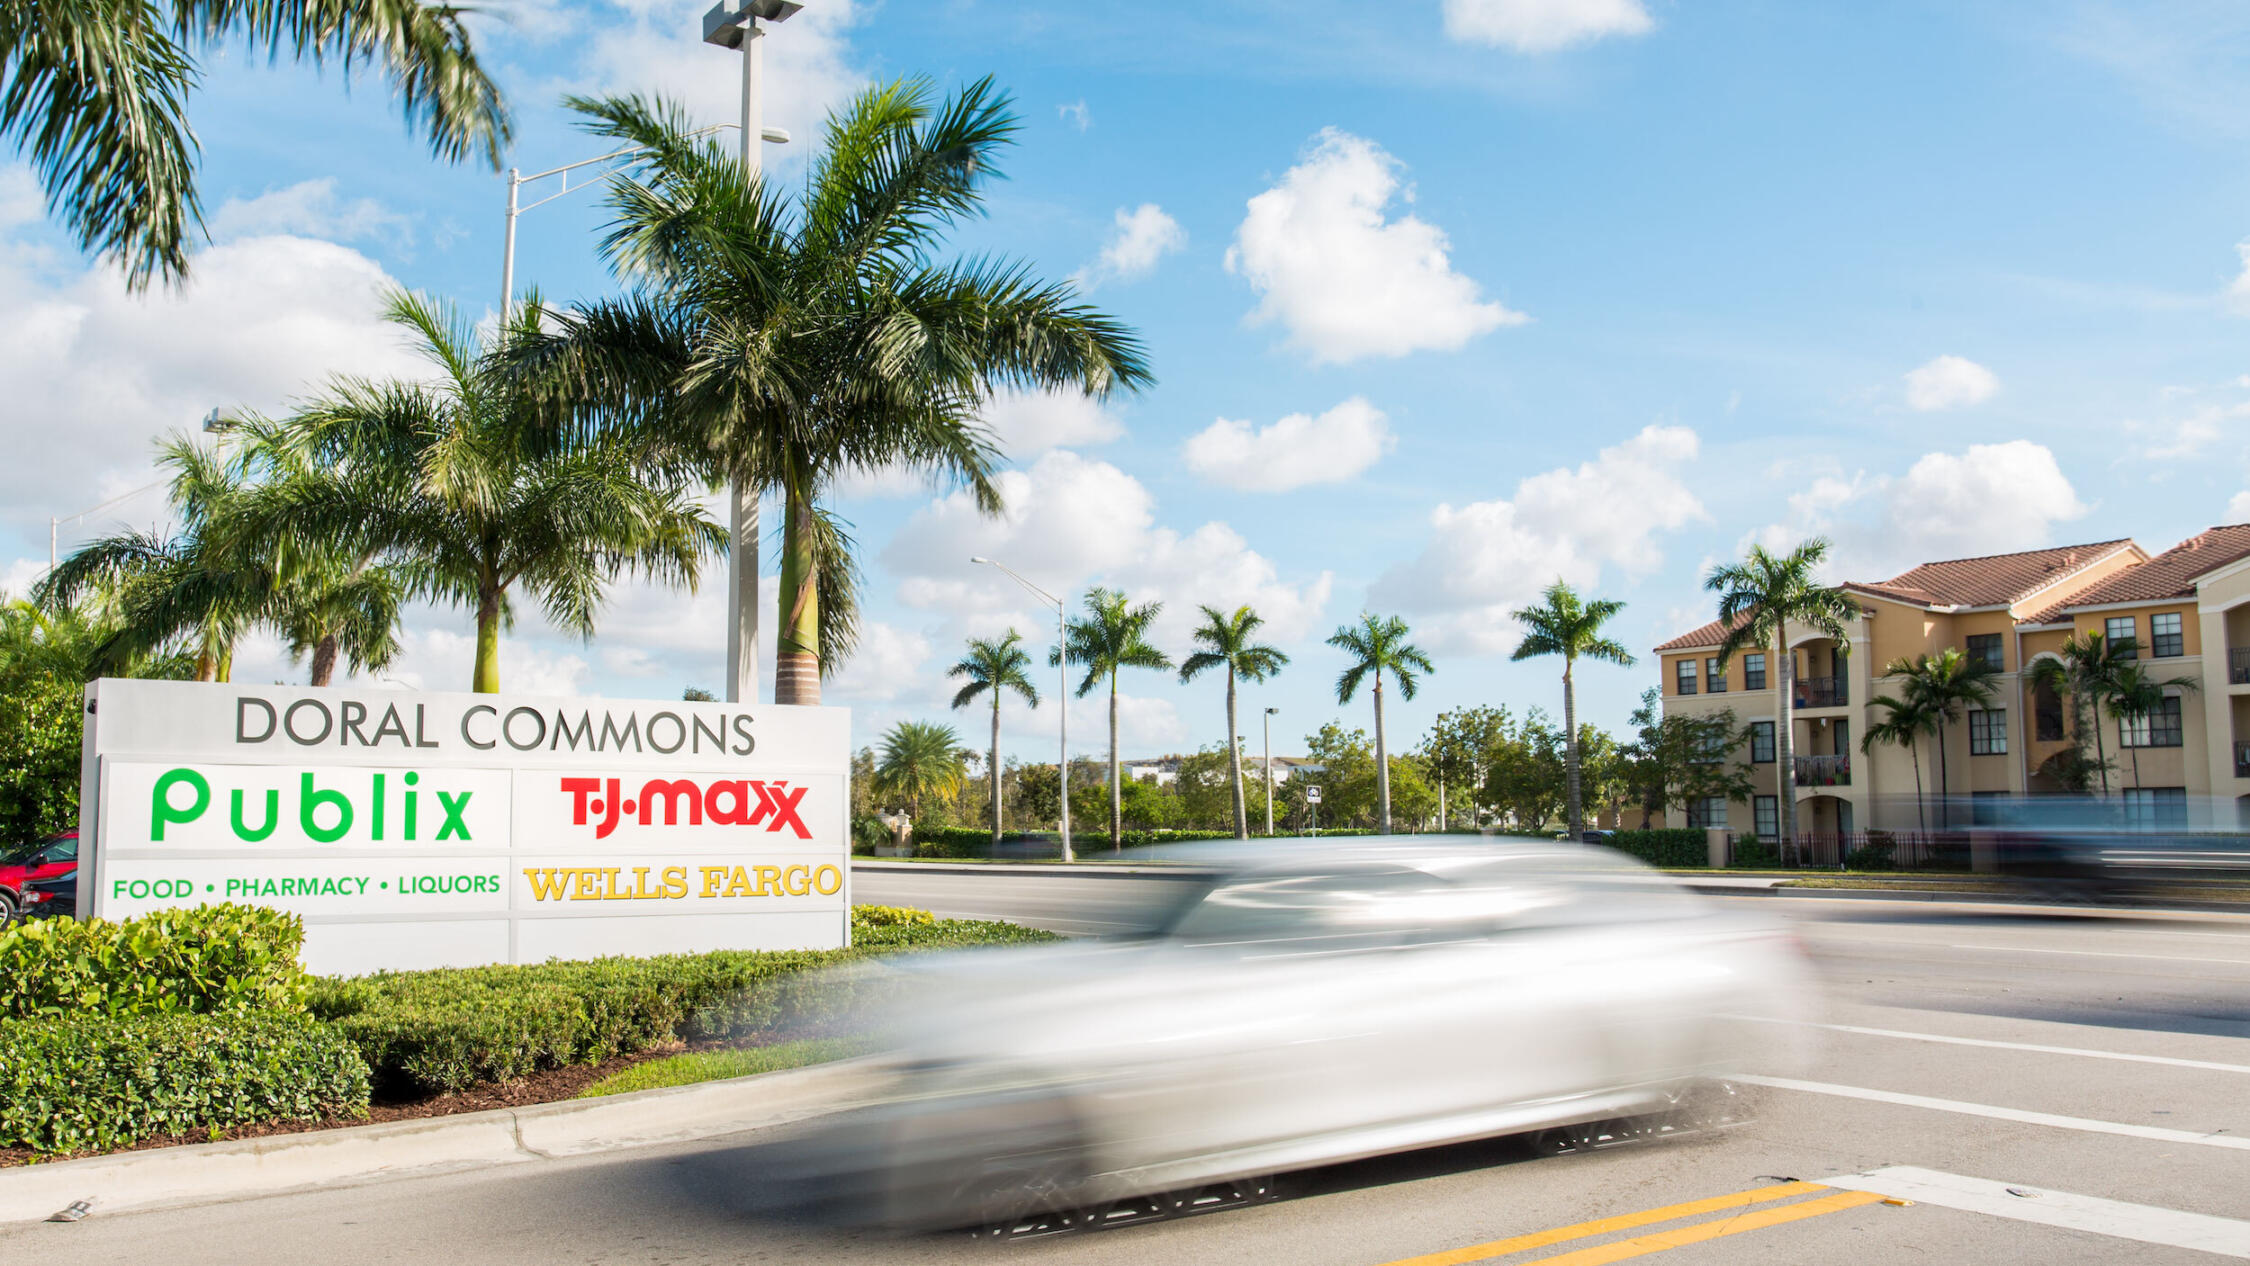 Doral Commons parking lot entrance with monument sign and street lined with palm trees